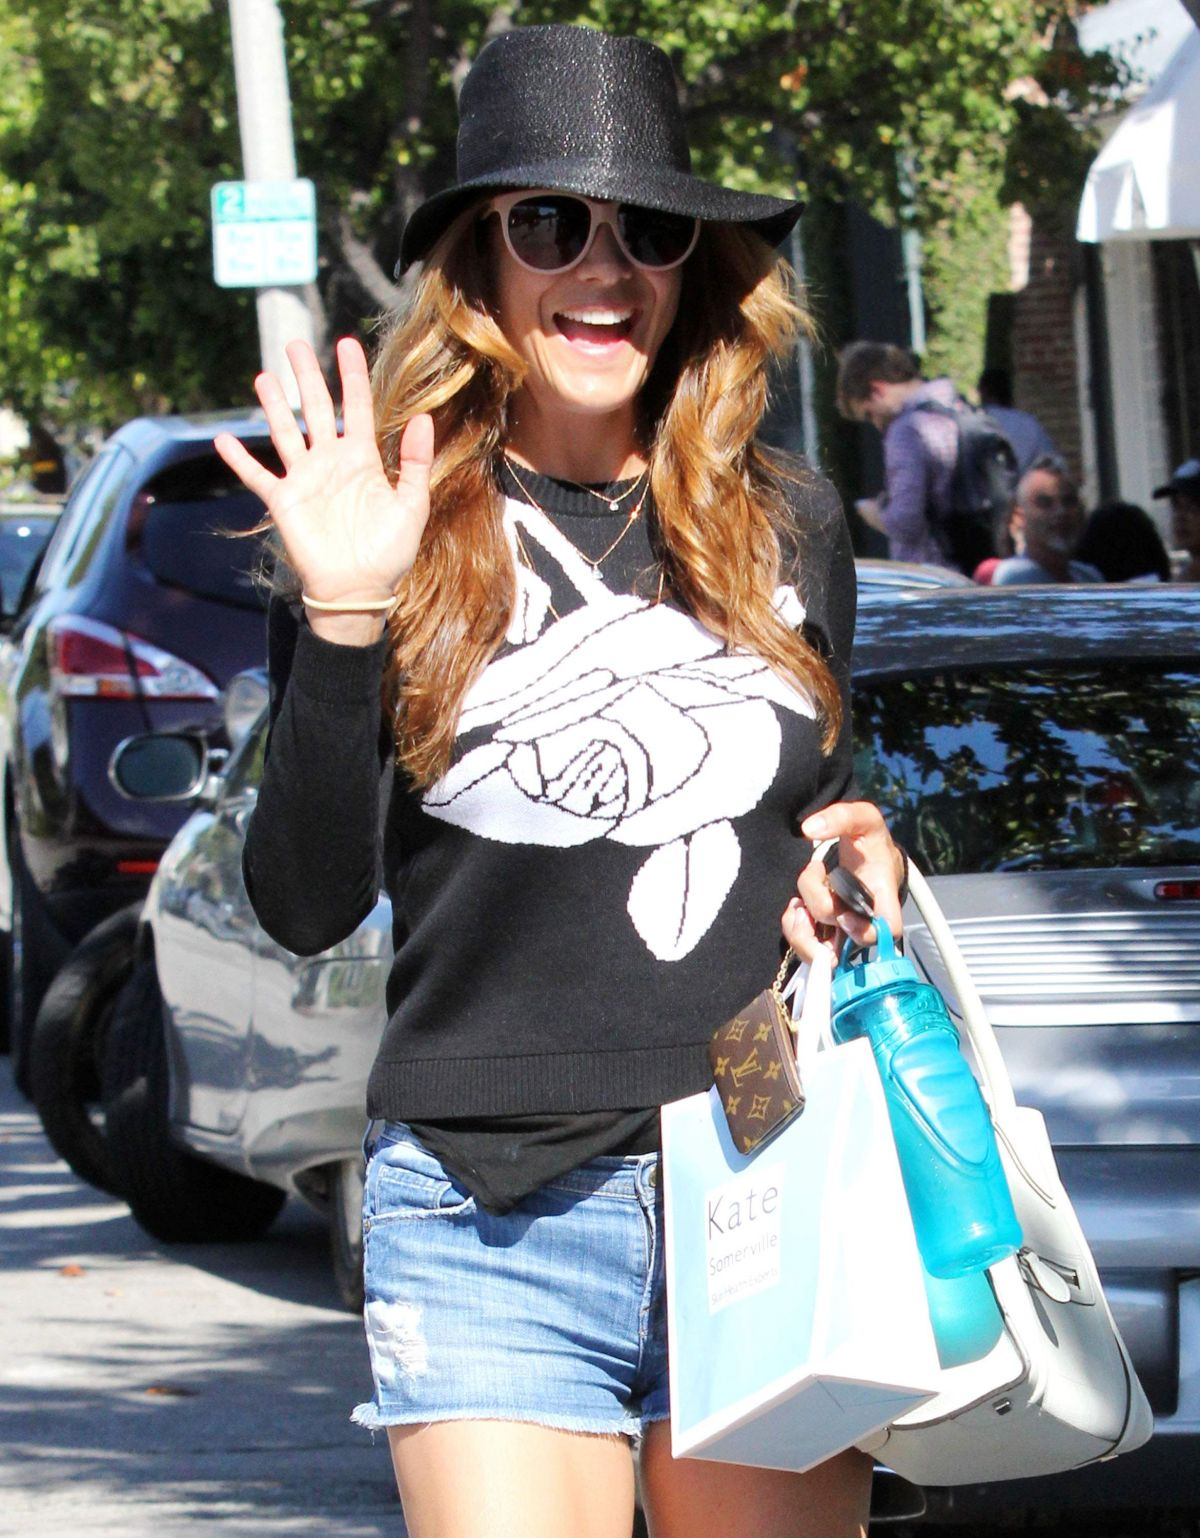 Kate Walsh Out And About In Hollywood